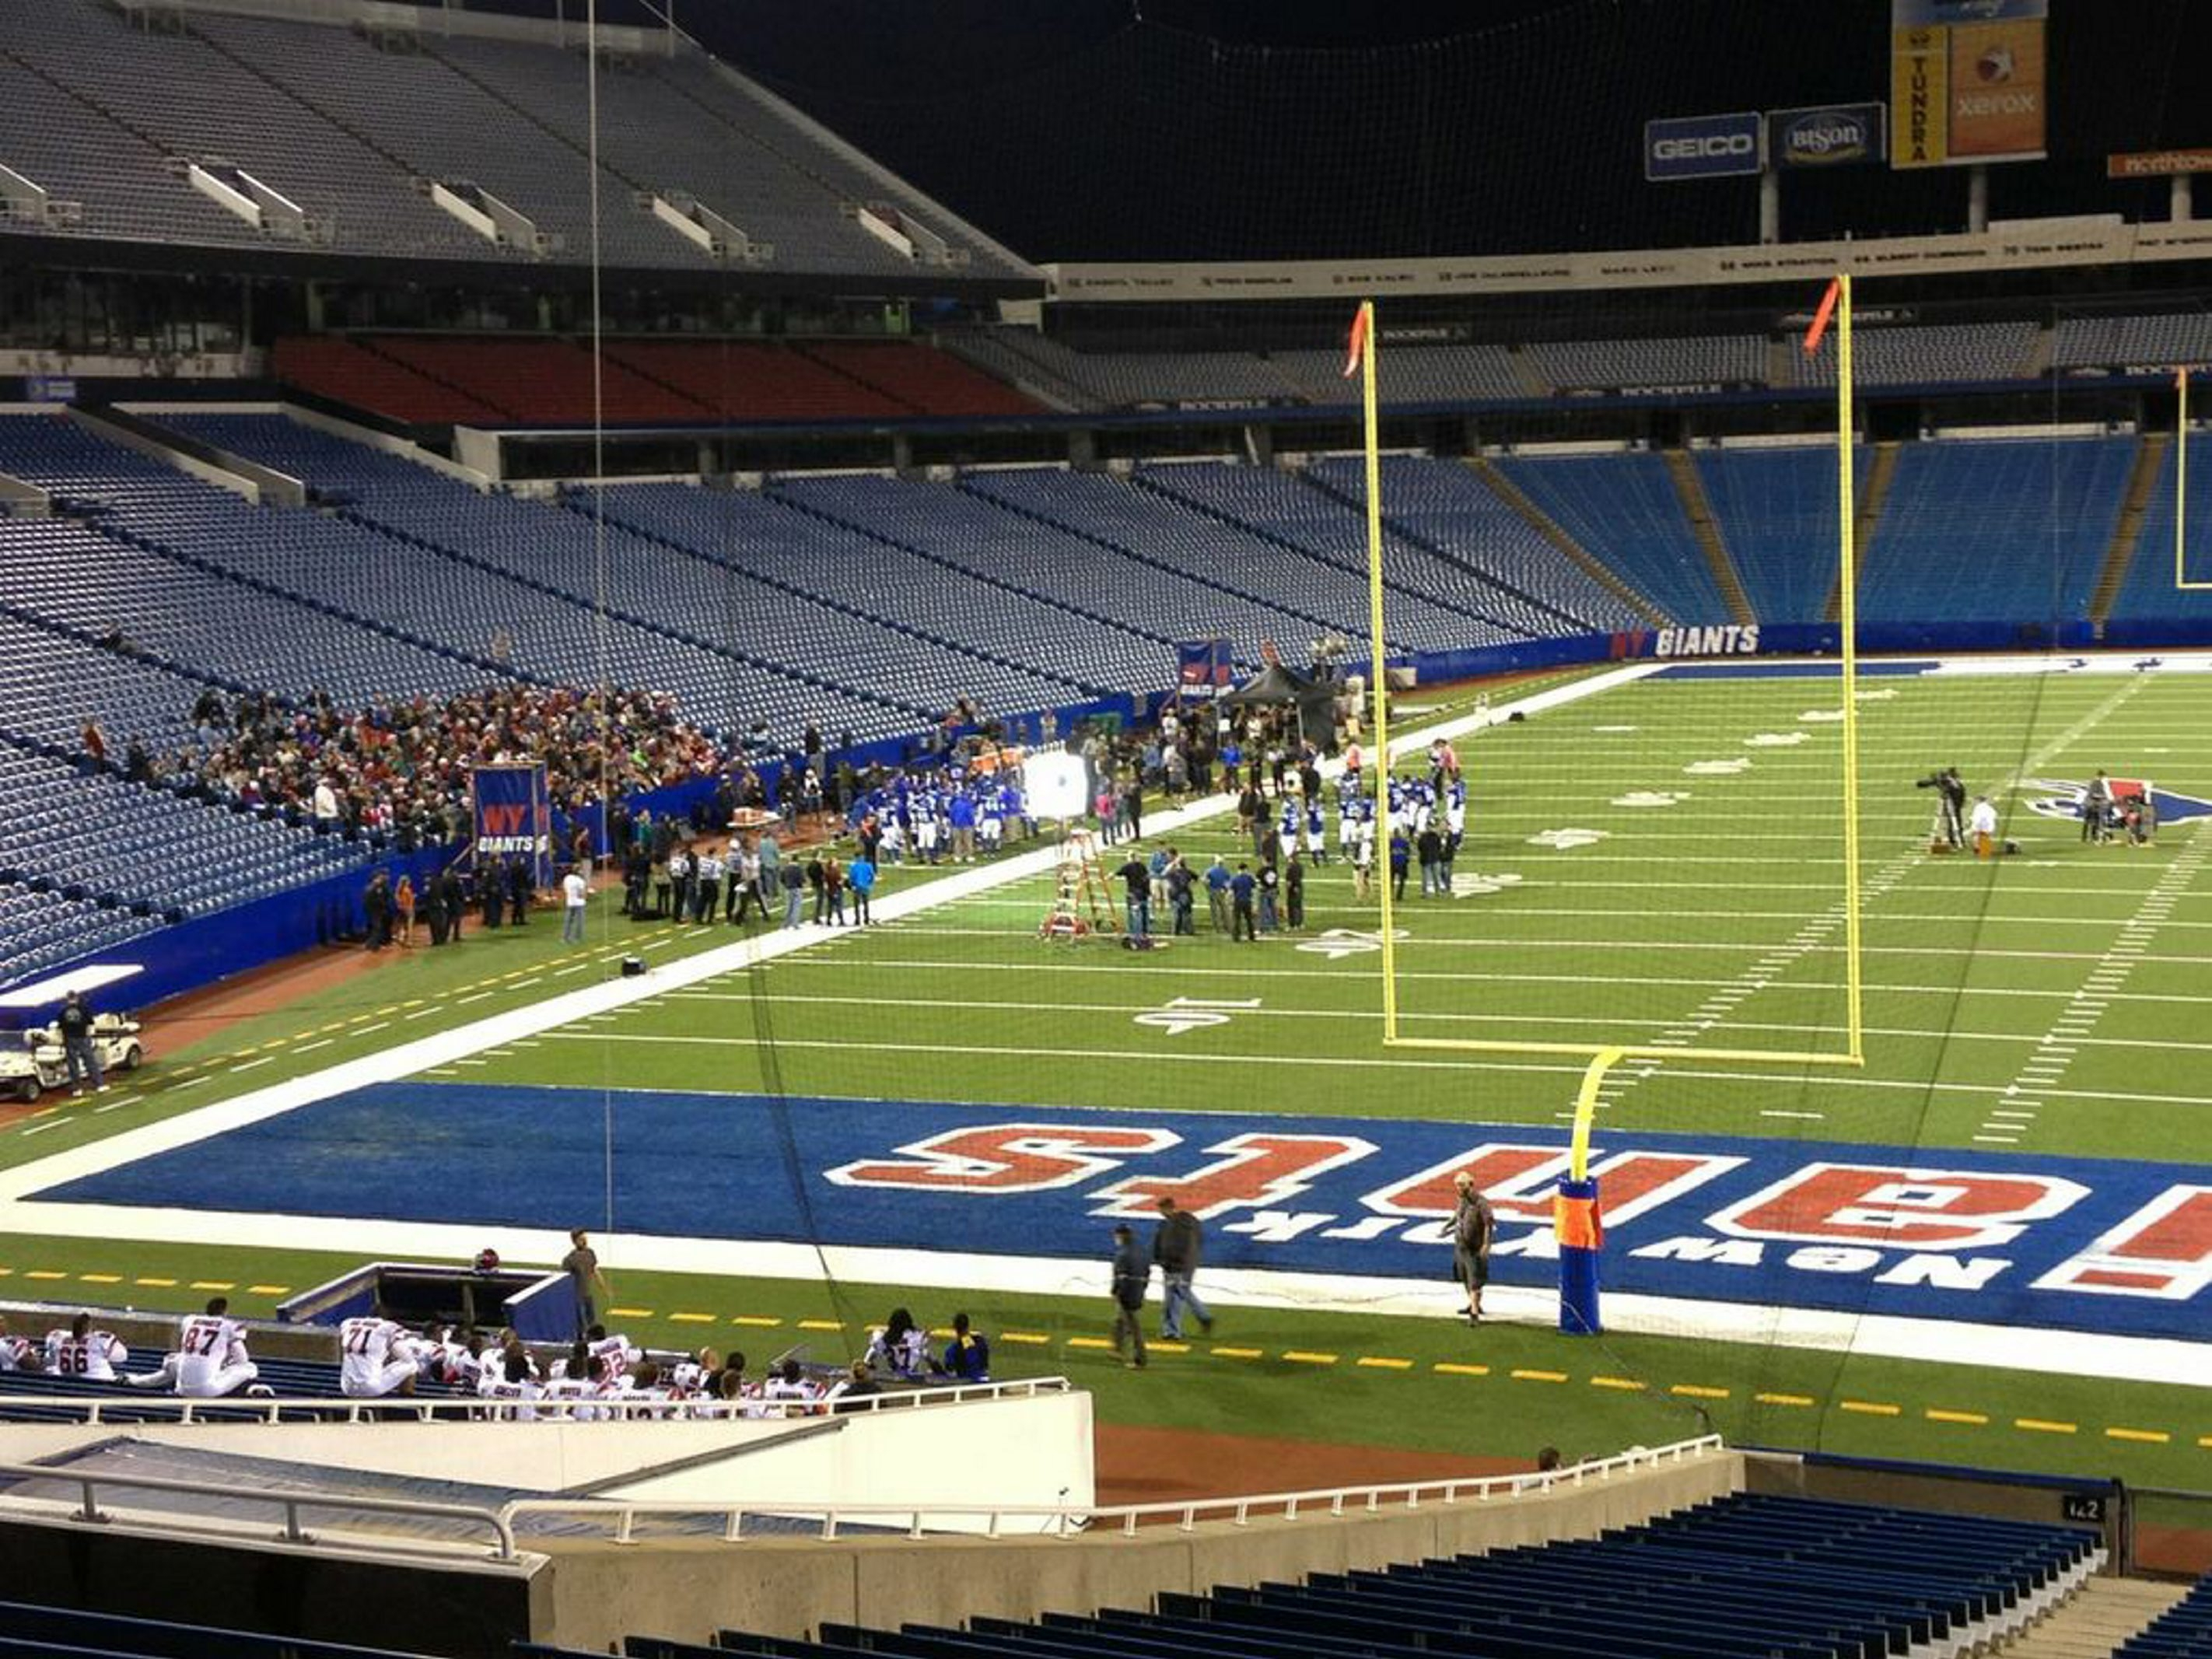 """Ralph Wilson Stadium was transformed into Giants stadium for filming of a scene in """"Best Man Holiday,"""" which opens today."""